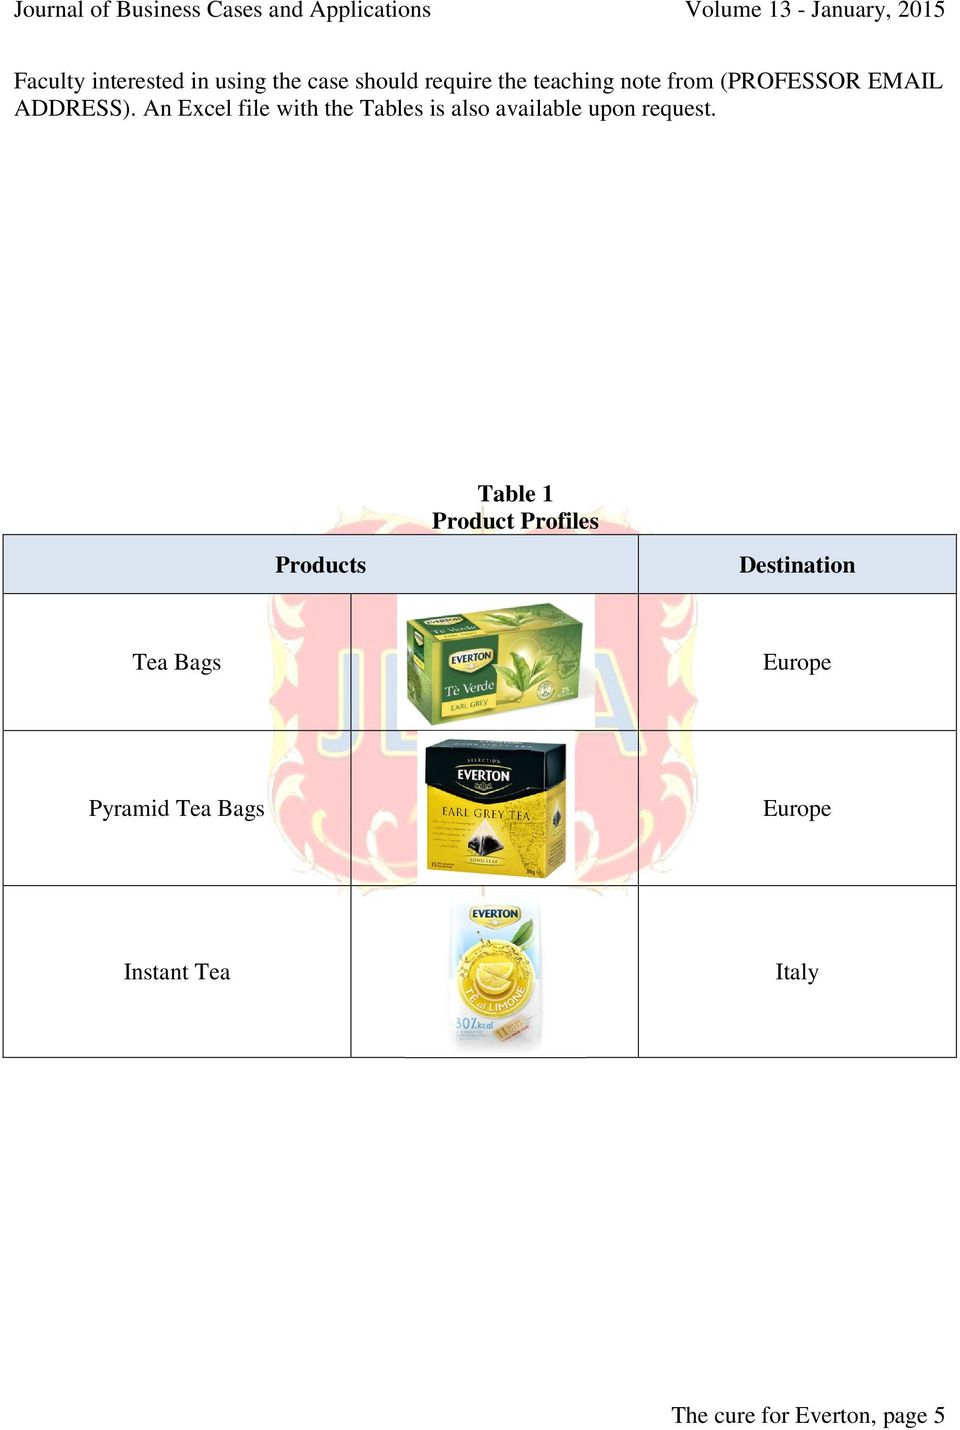 An Excel file with the Tables is also available upon request.